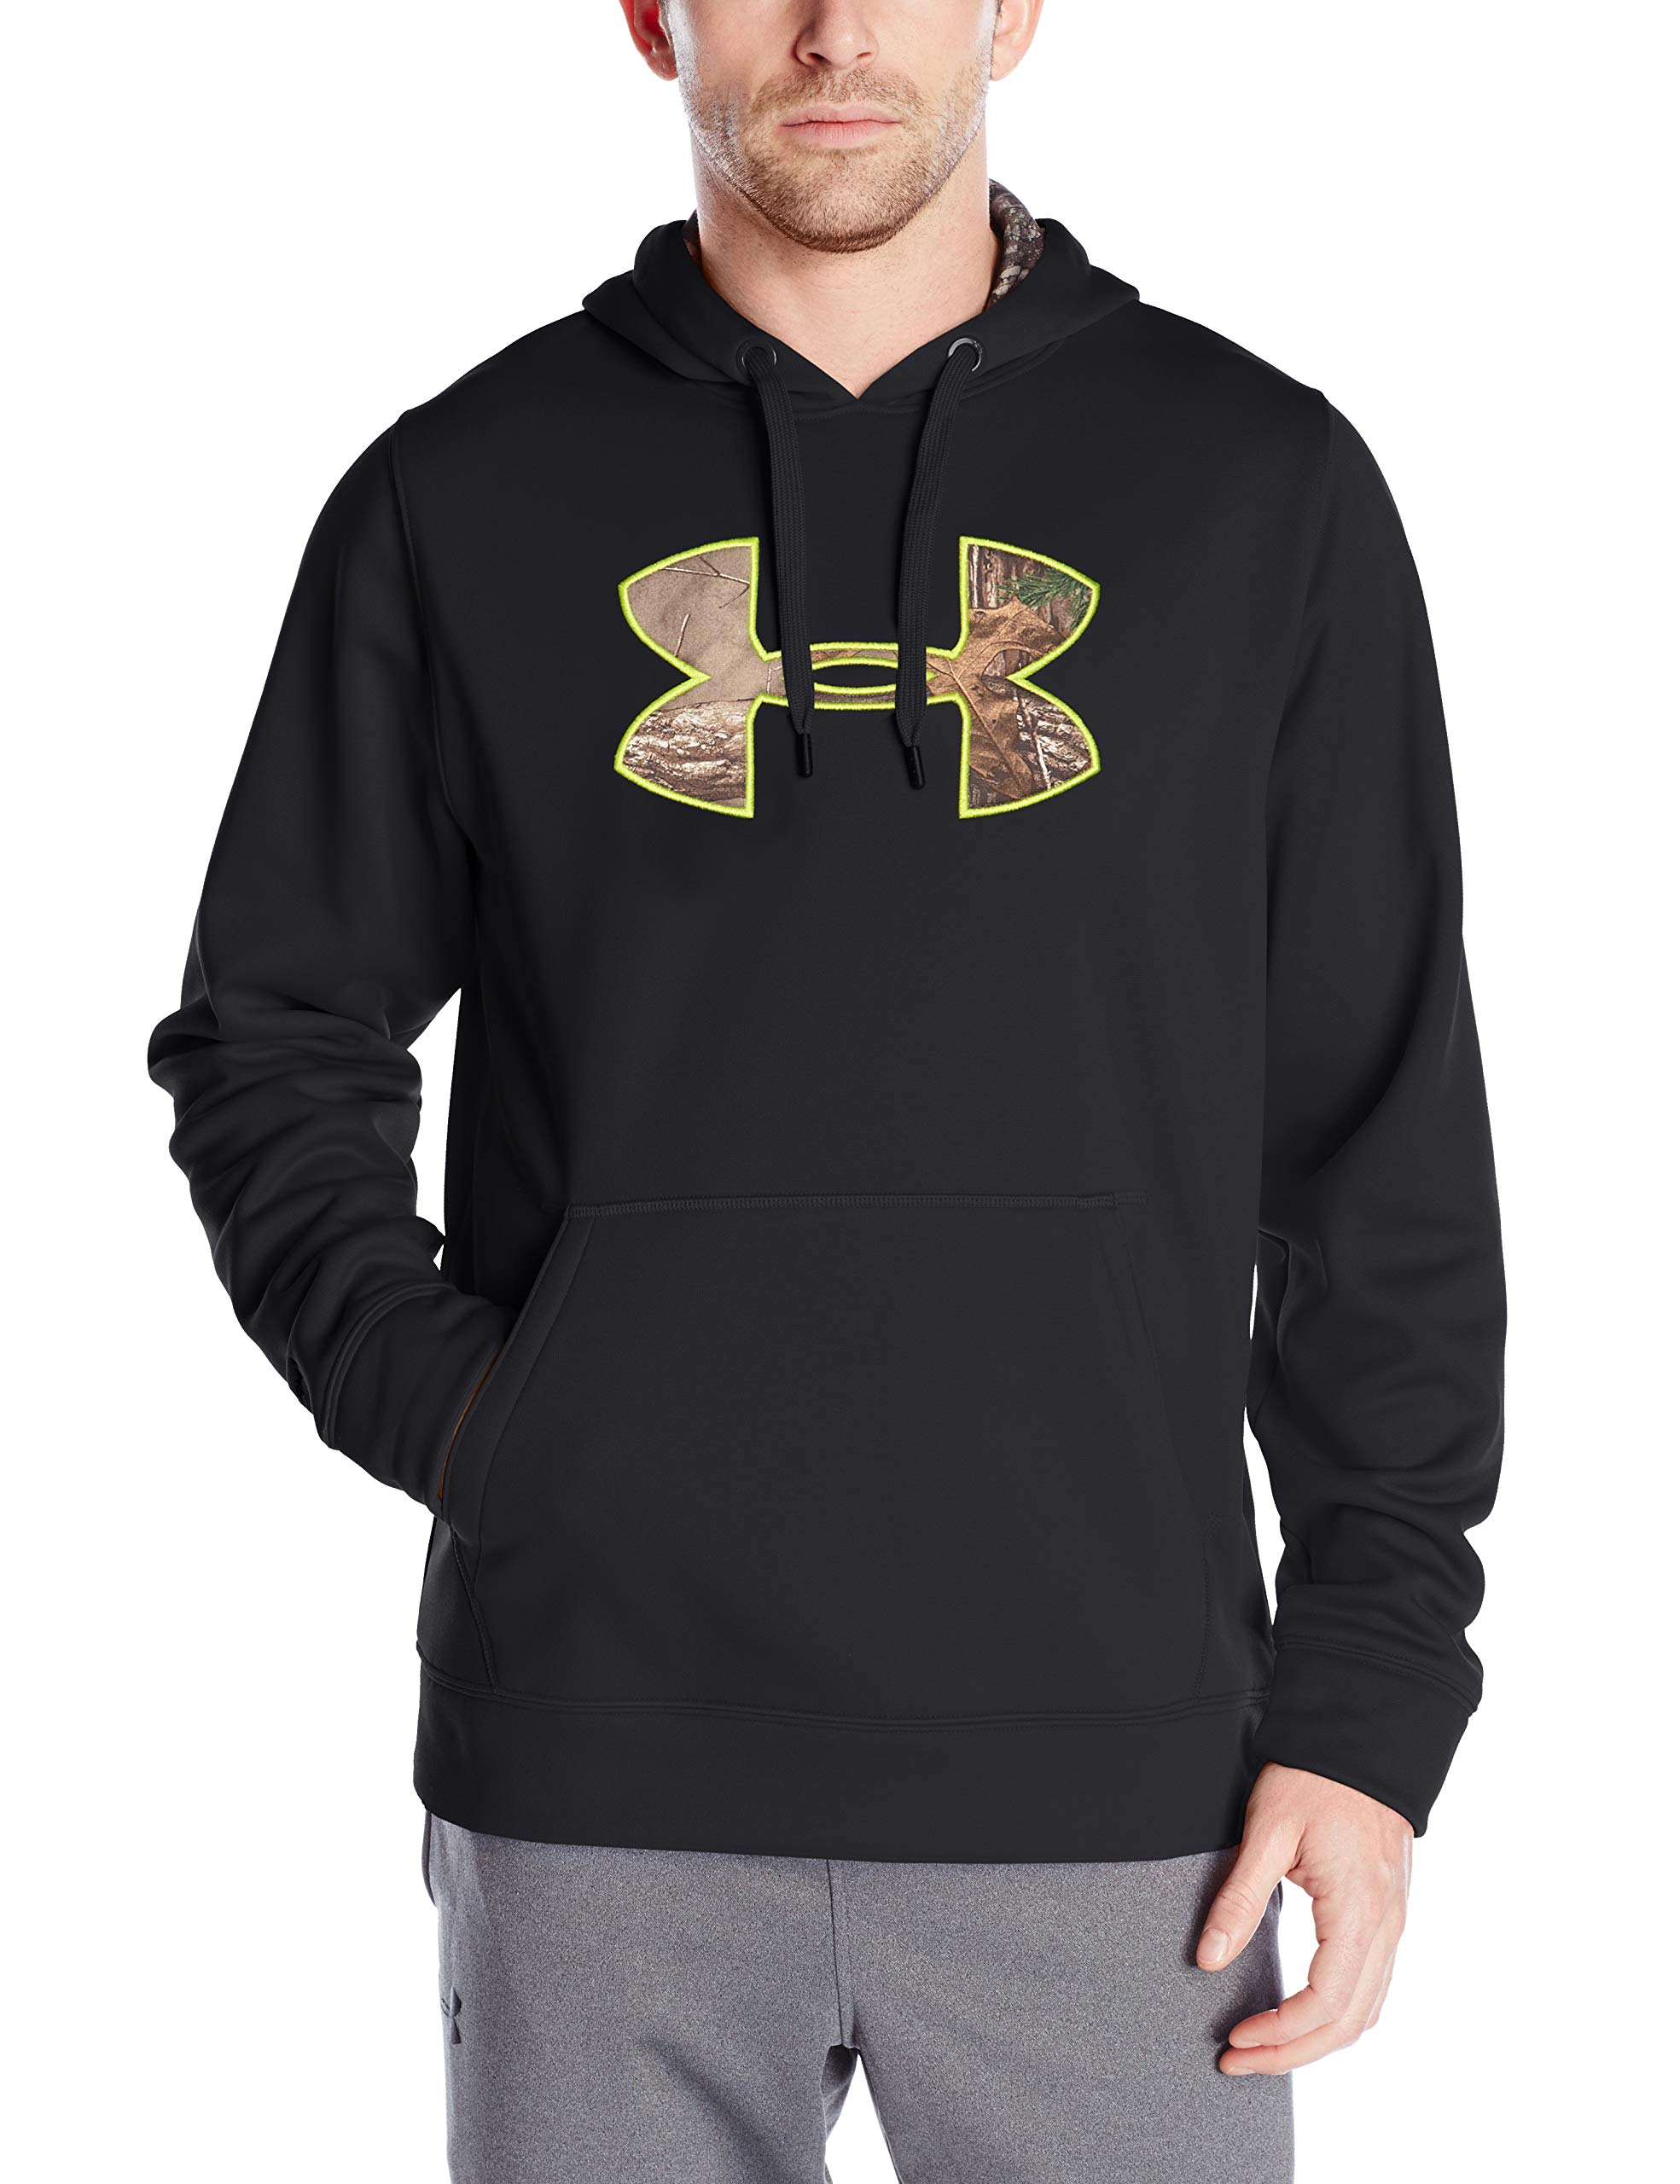 Under Armour Men's Storm Caliber Hoodie, Black /Realtree Ap-Xtra, X-Large by Under Armour